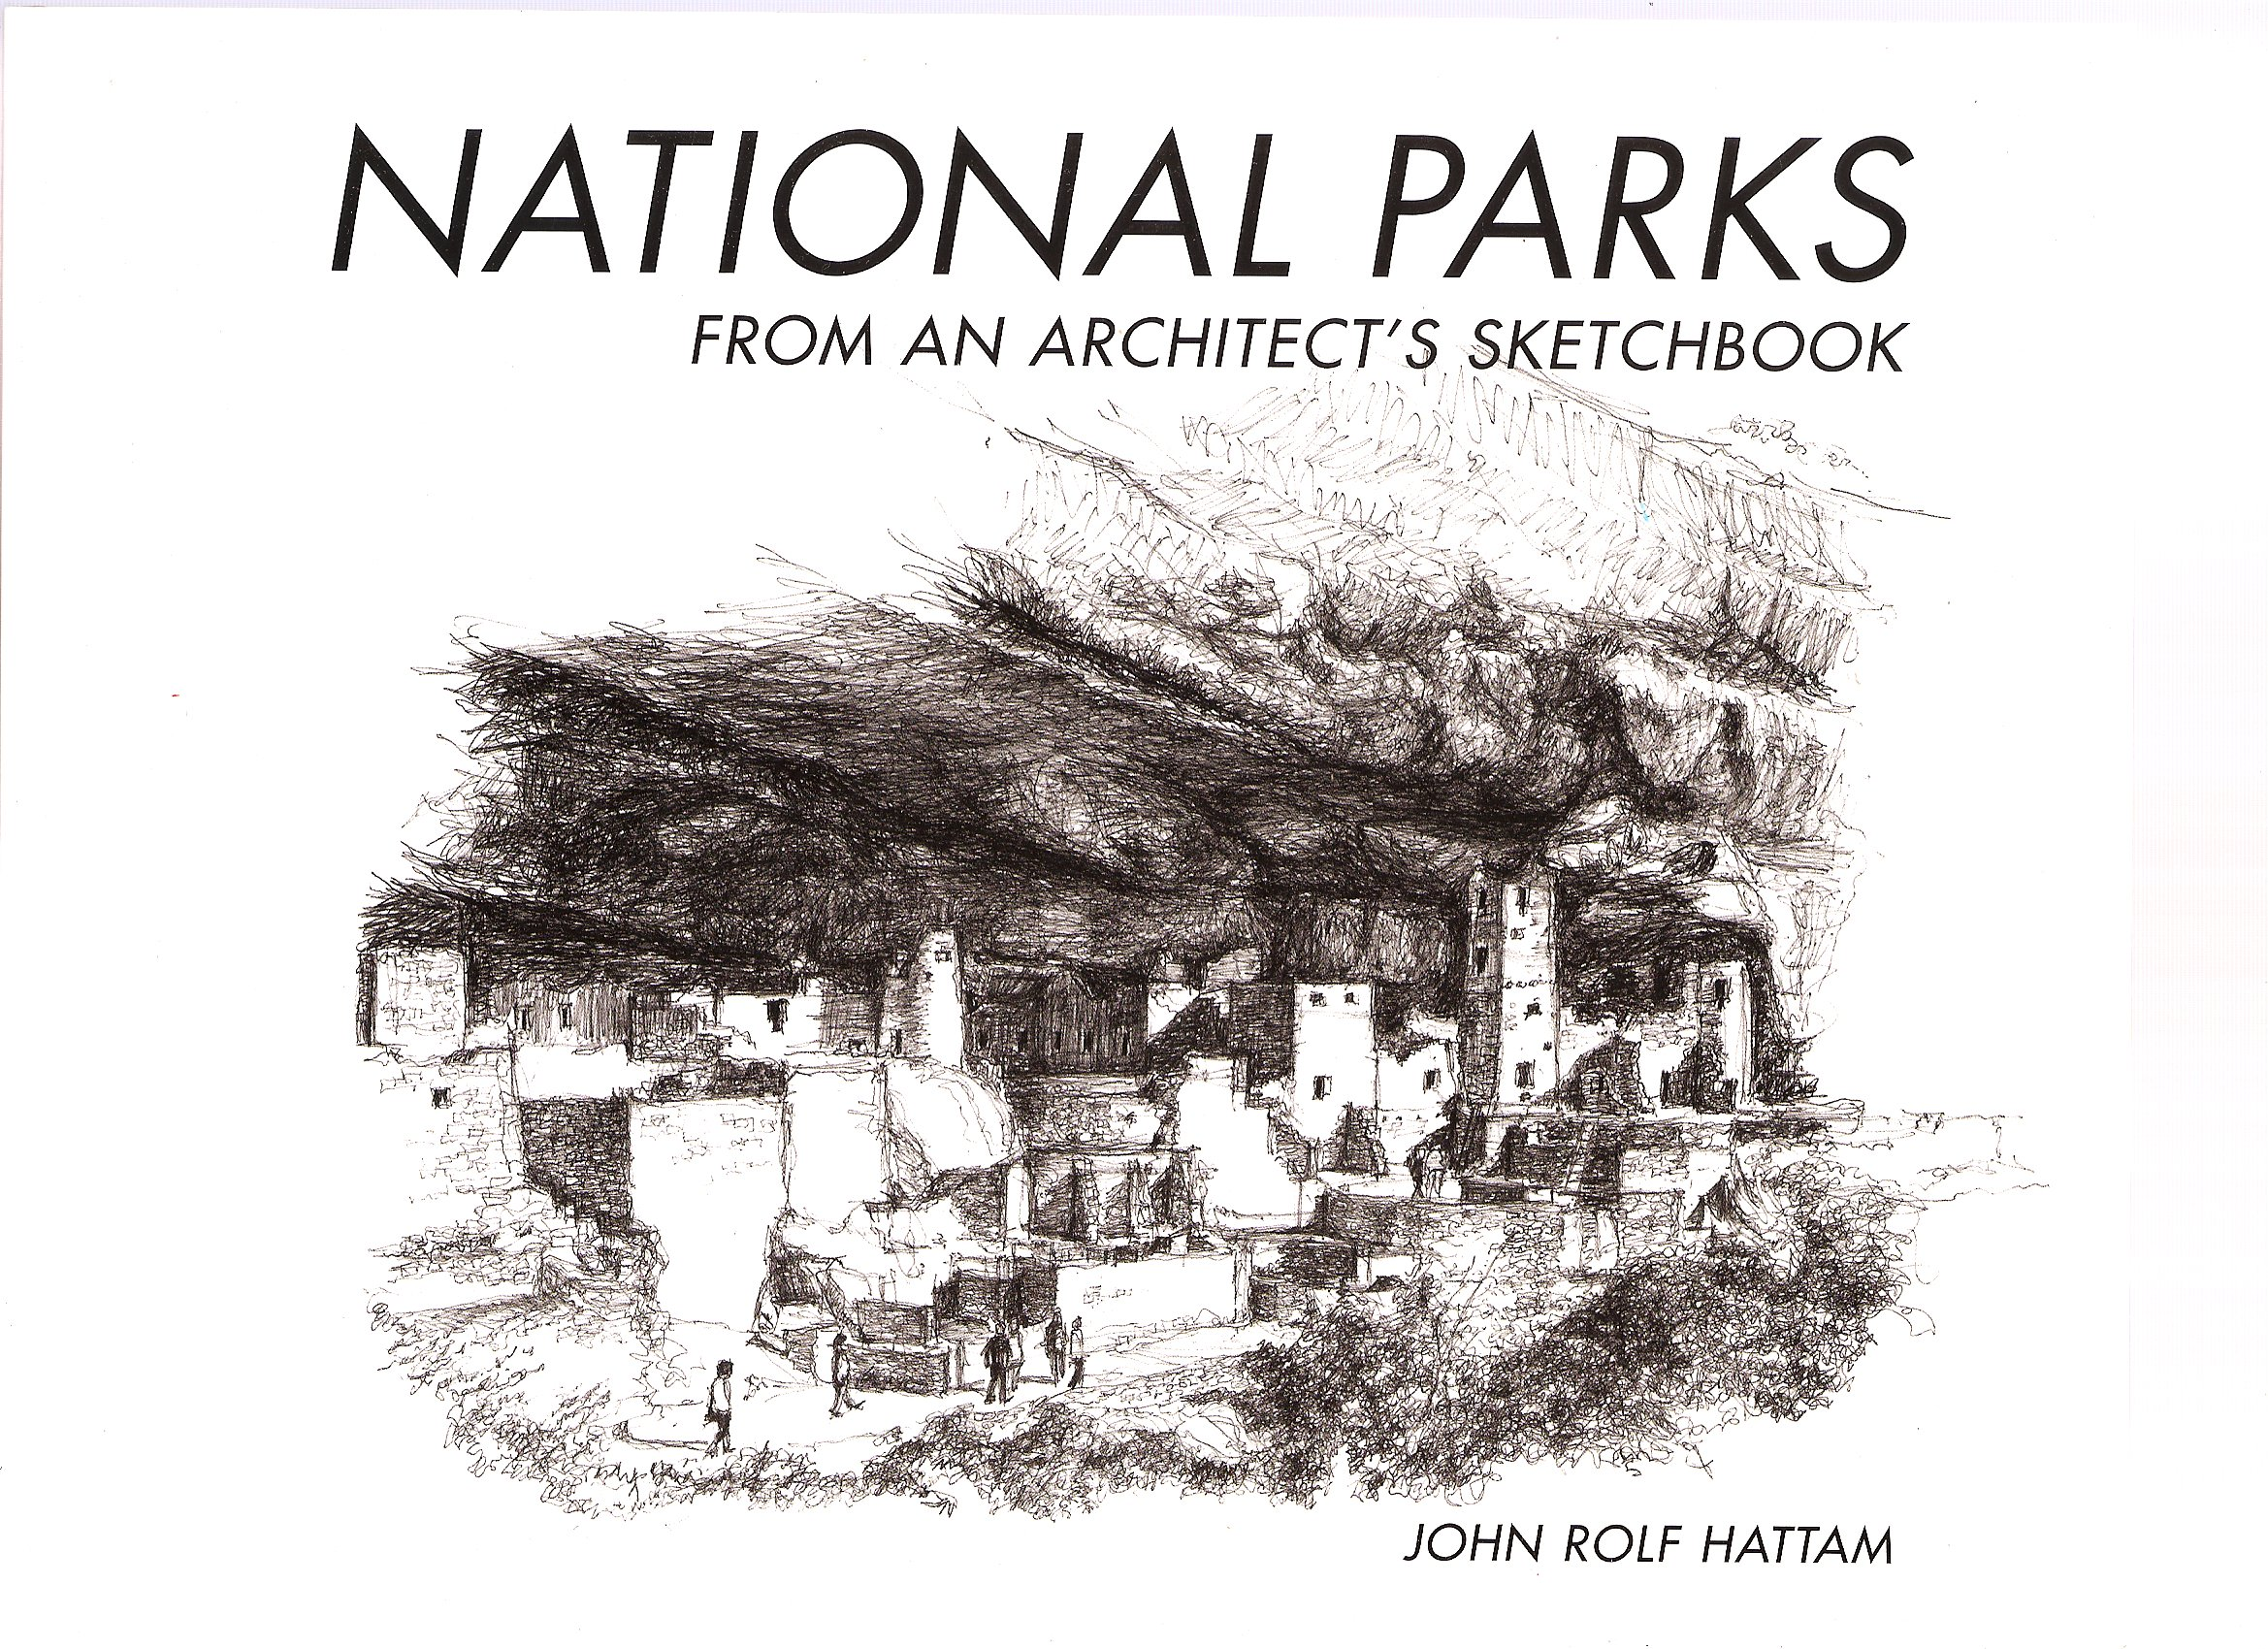 National Parks from an Architect's Sketchbook pdf